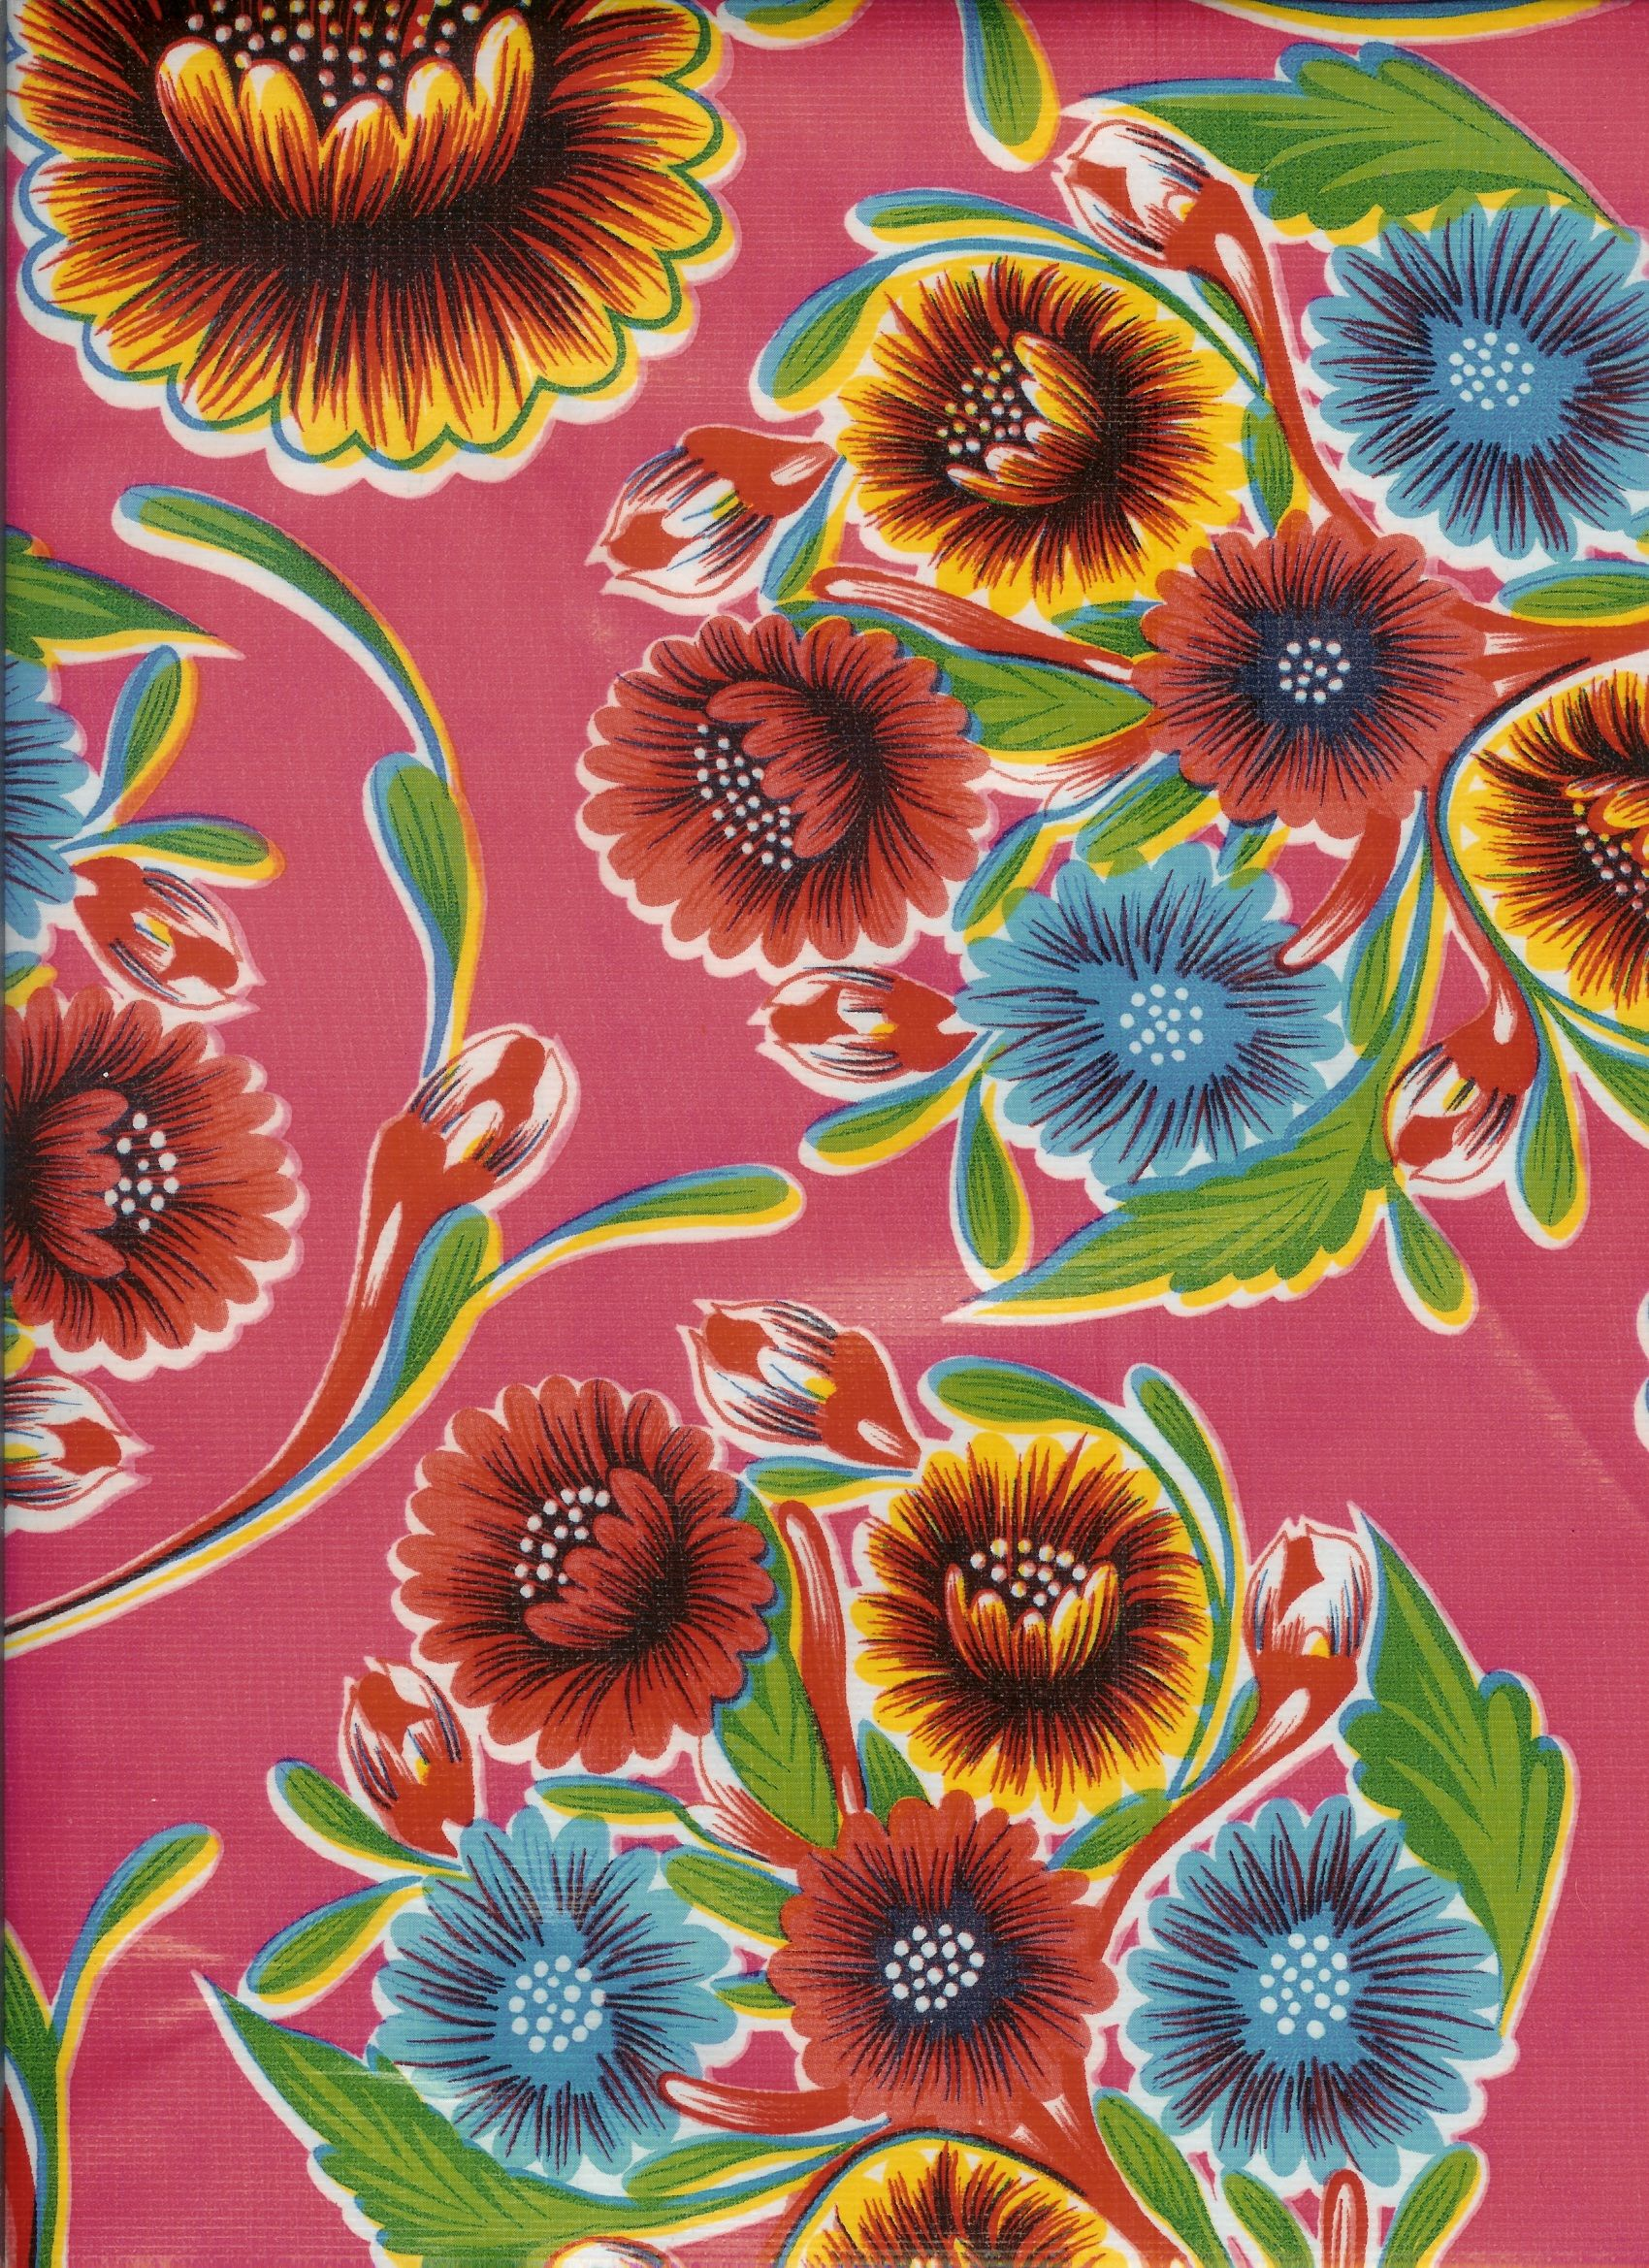 Pin By Oilcloth International On Oilcloth International Oil